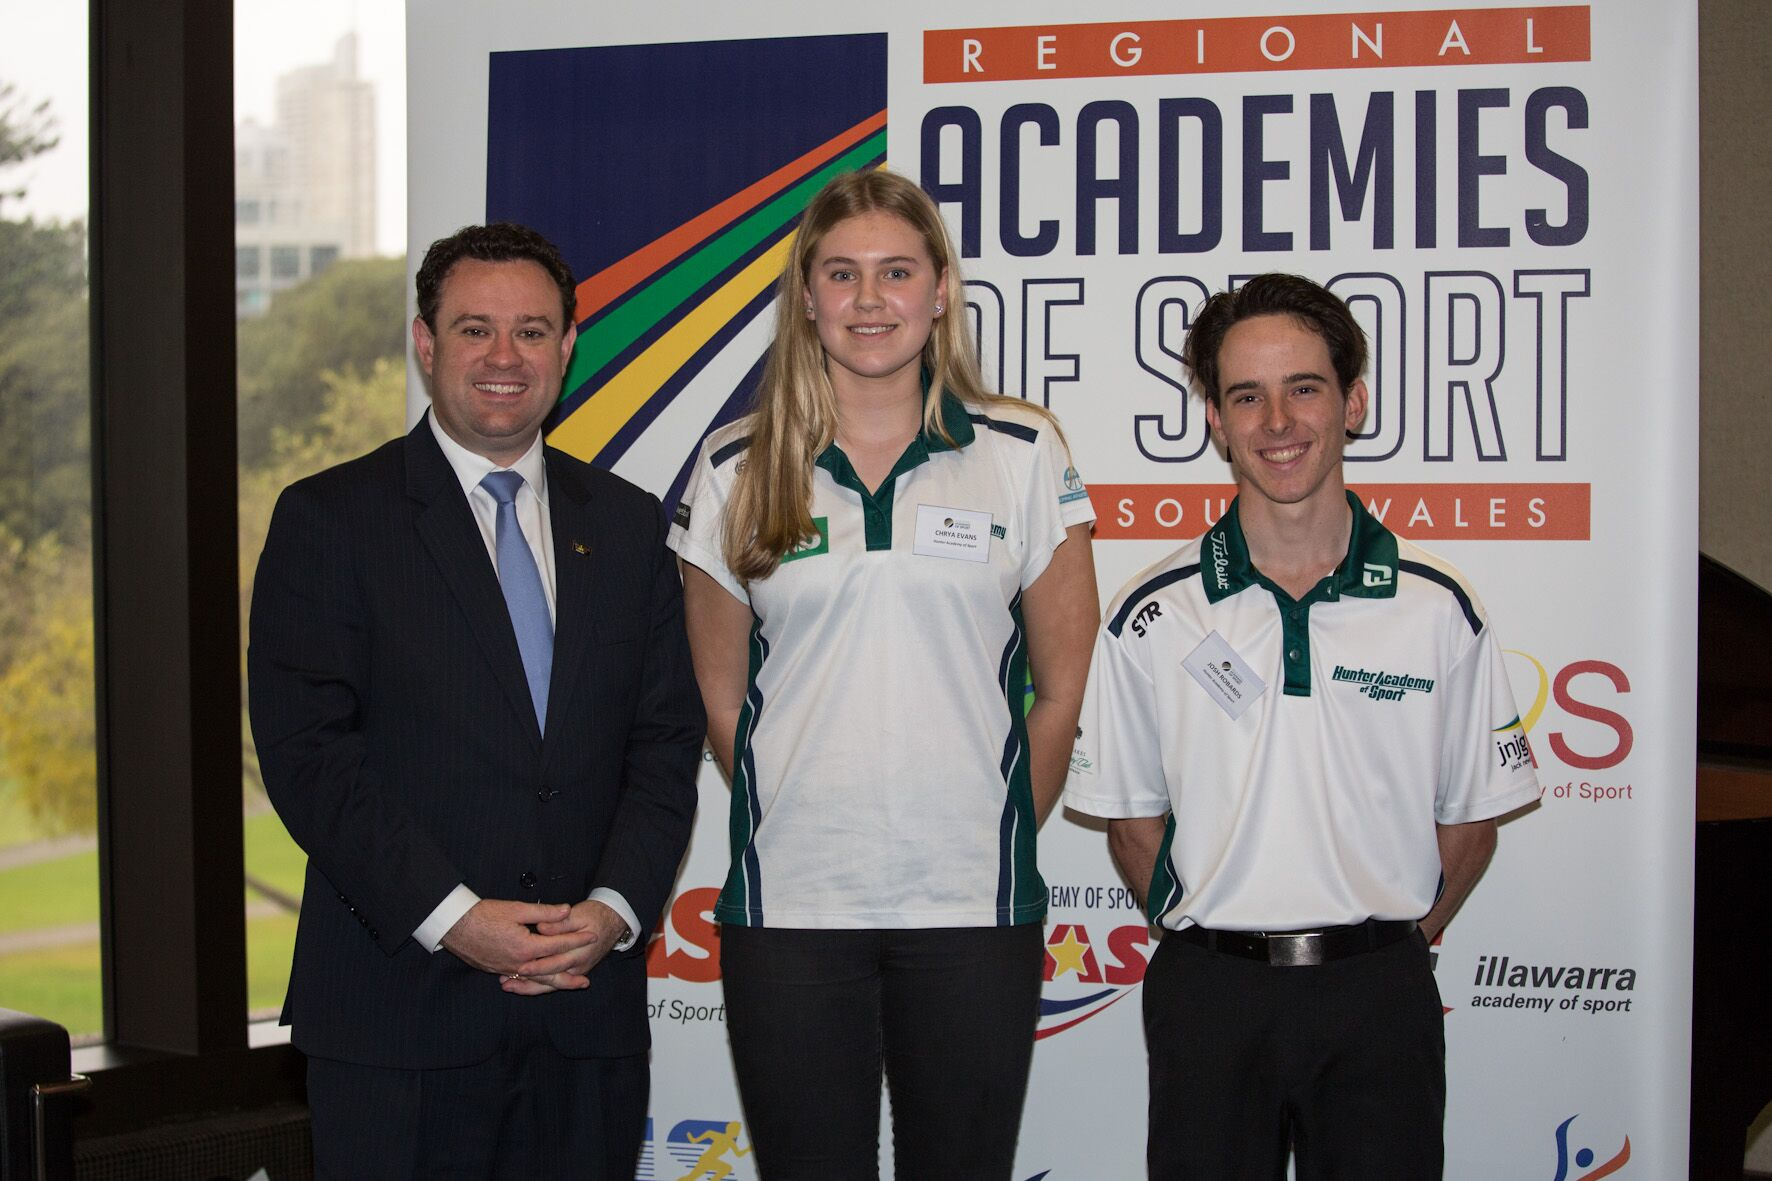 TWO Hunter Academy of Sport athletes were chosen to represent the Hunter Region at the annual Regional Academies of Sport parliamentary reception at the NSW Parliament House last month.